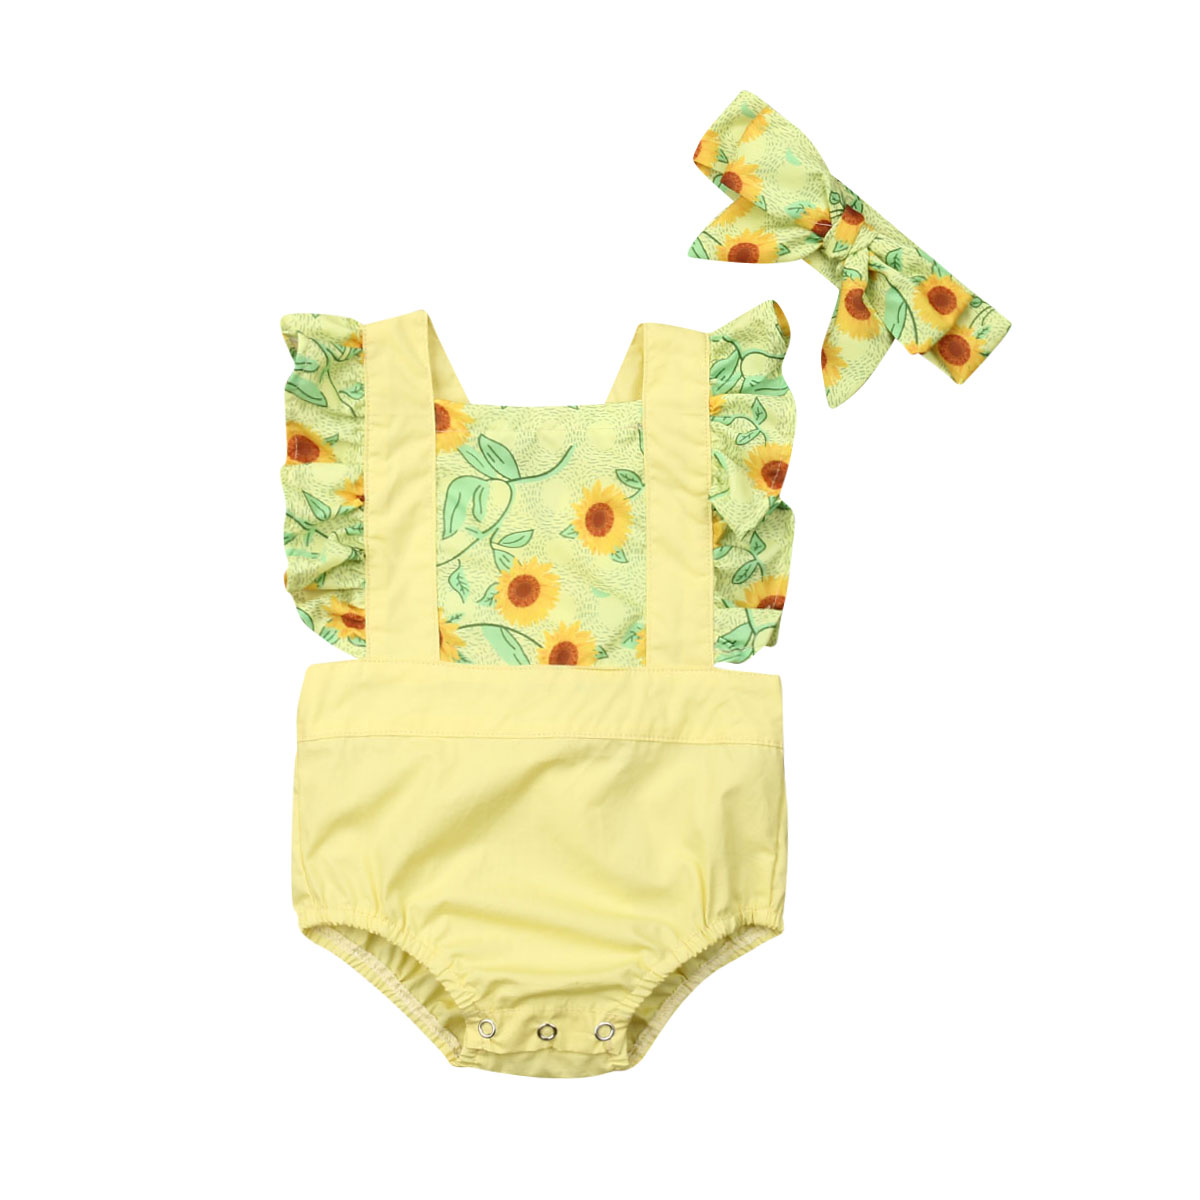 0 24M Infant Baby Girl Summer Ruffle Backless Bodysuit Strappy Sleeveless Patchwork Sunflower Outfit with Headband Cute Clothes in Clothing Sets from Mother Kids